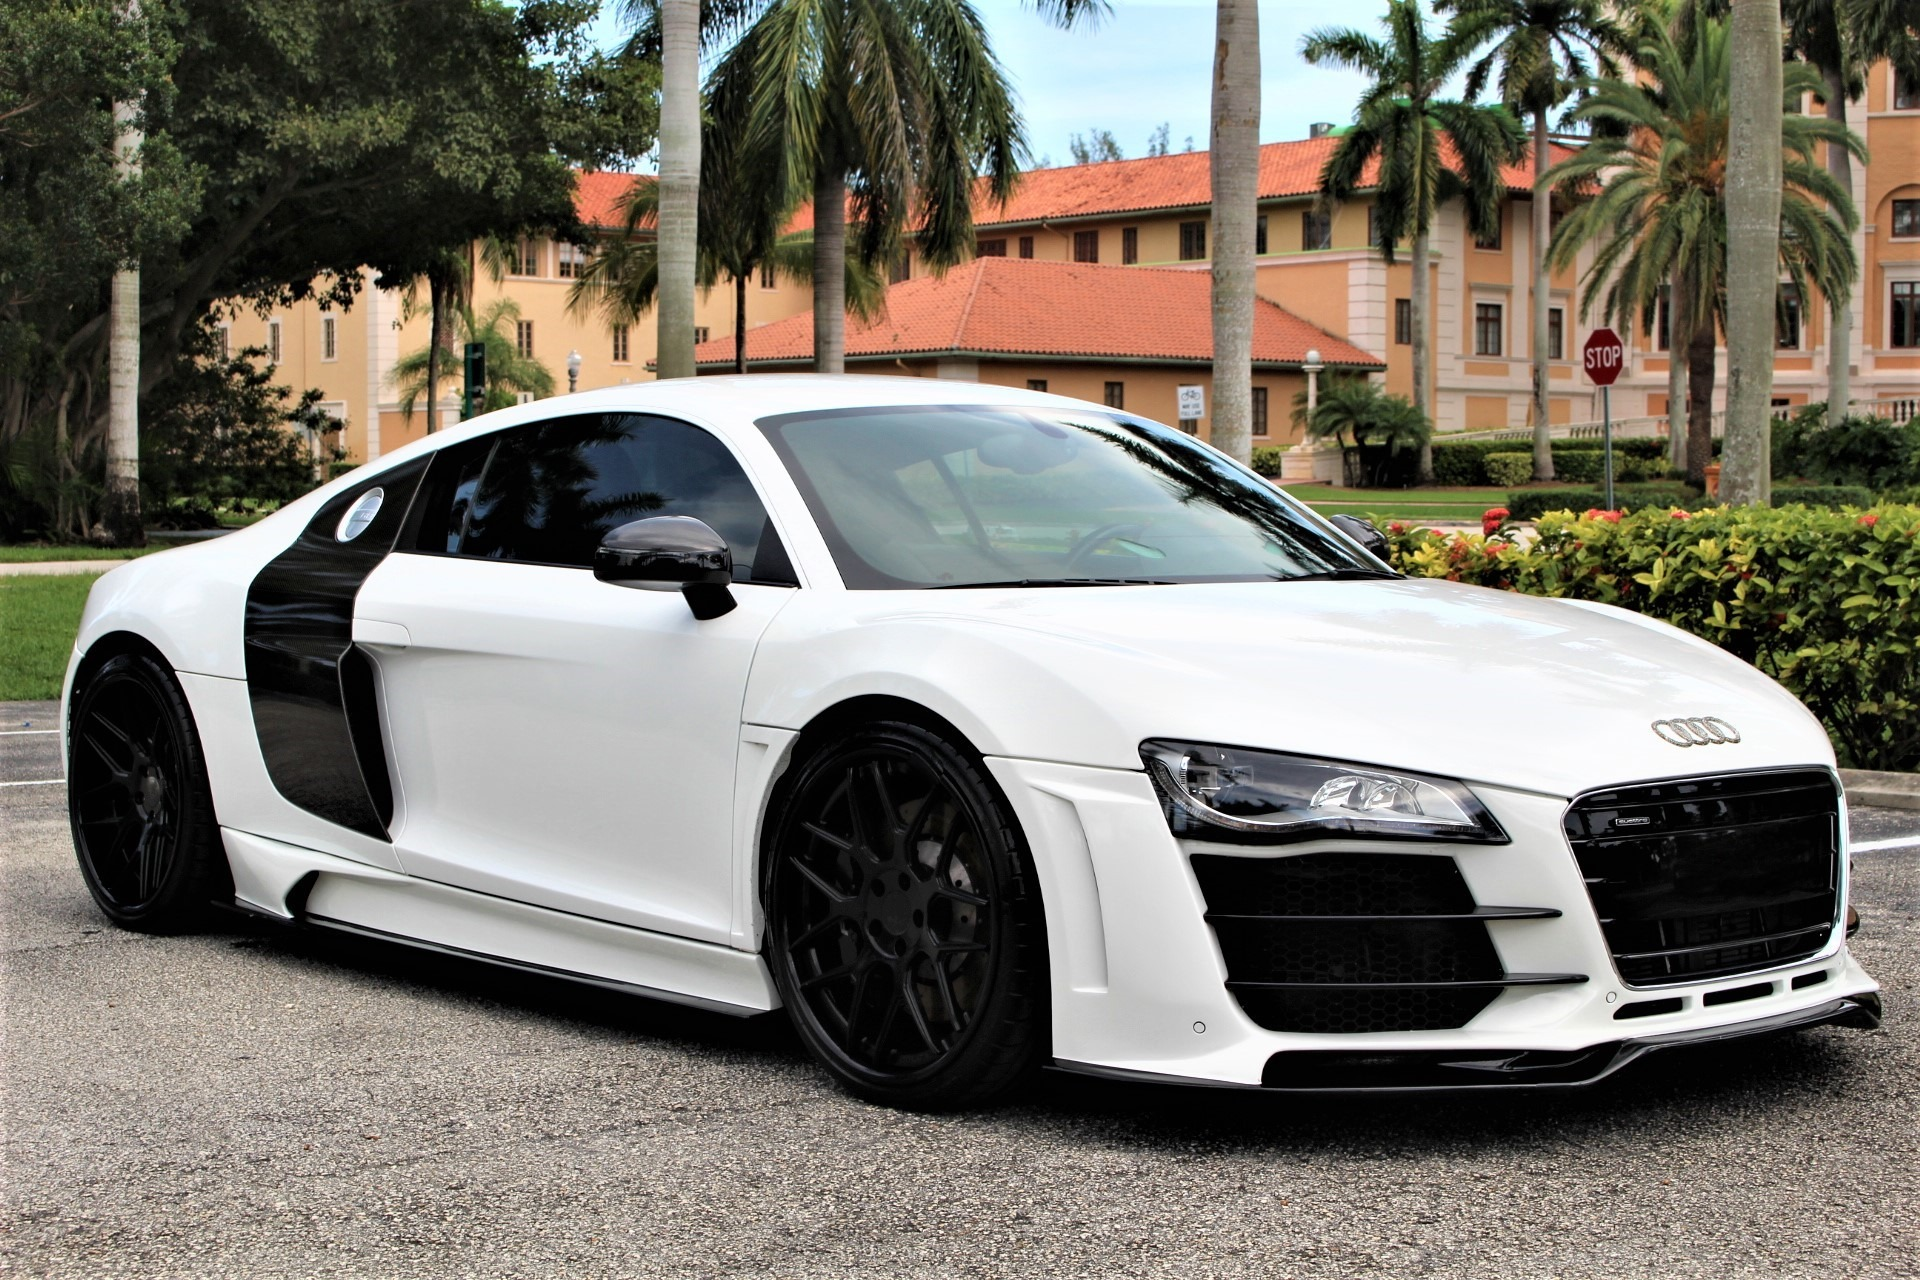 Used 2010 Audi R8 5.2 quattro for sale Sold at The Gables Sports Cars in Miami FL 33146 1